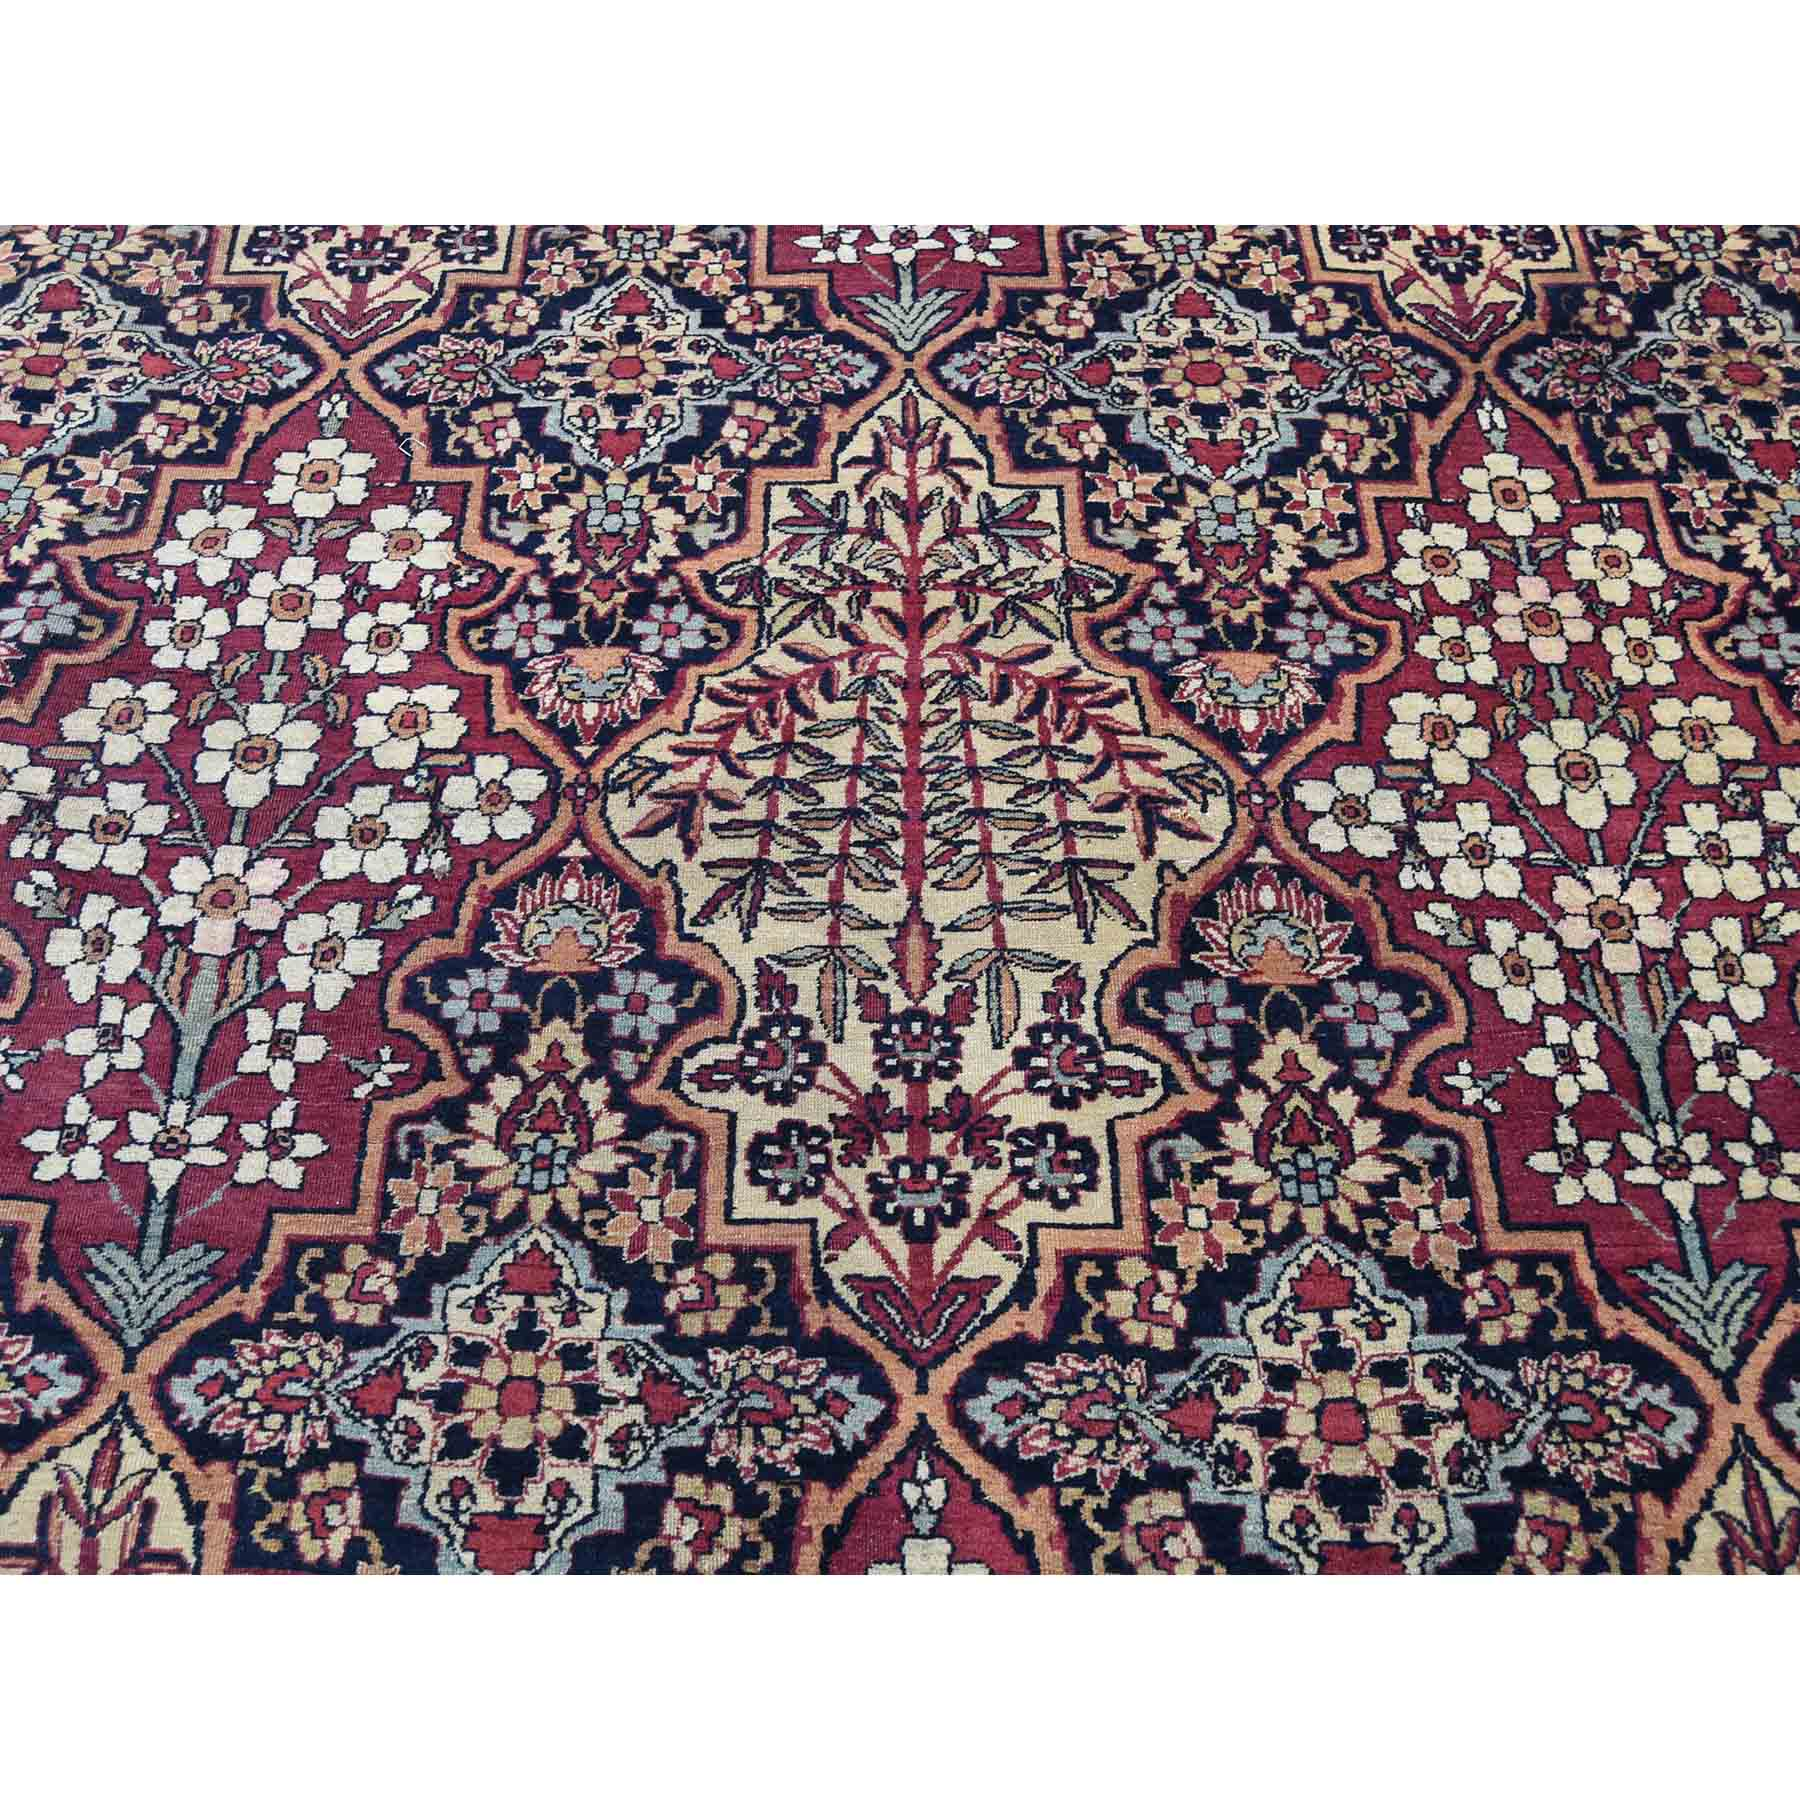 14-x16-9  Antique Persian Kerman Shah Good Condition Even Wear Hand-Knotted Oversize Oriental Rug